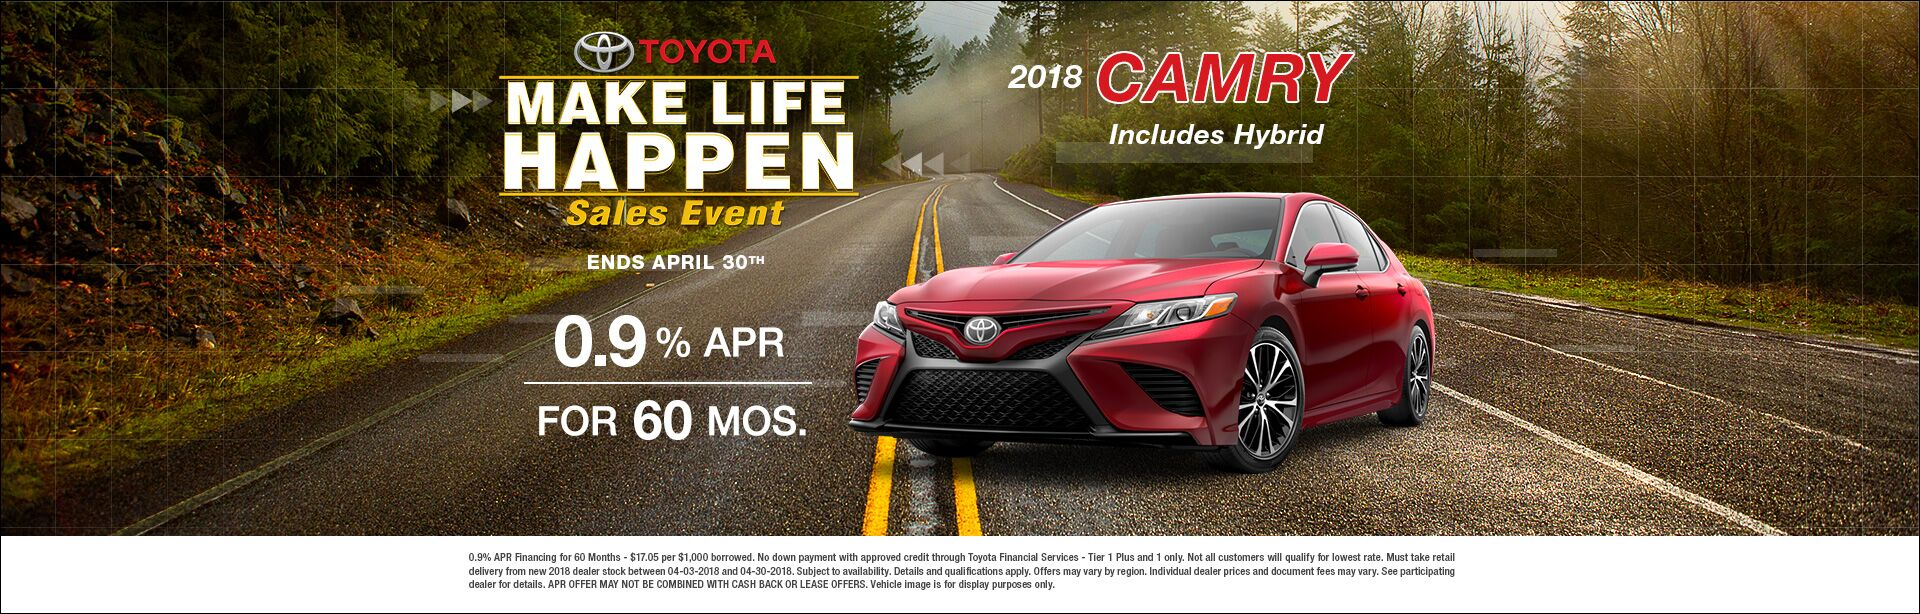 Make Life Happen Camry